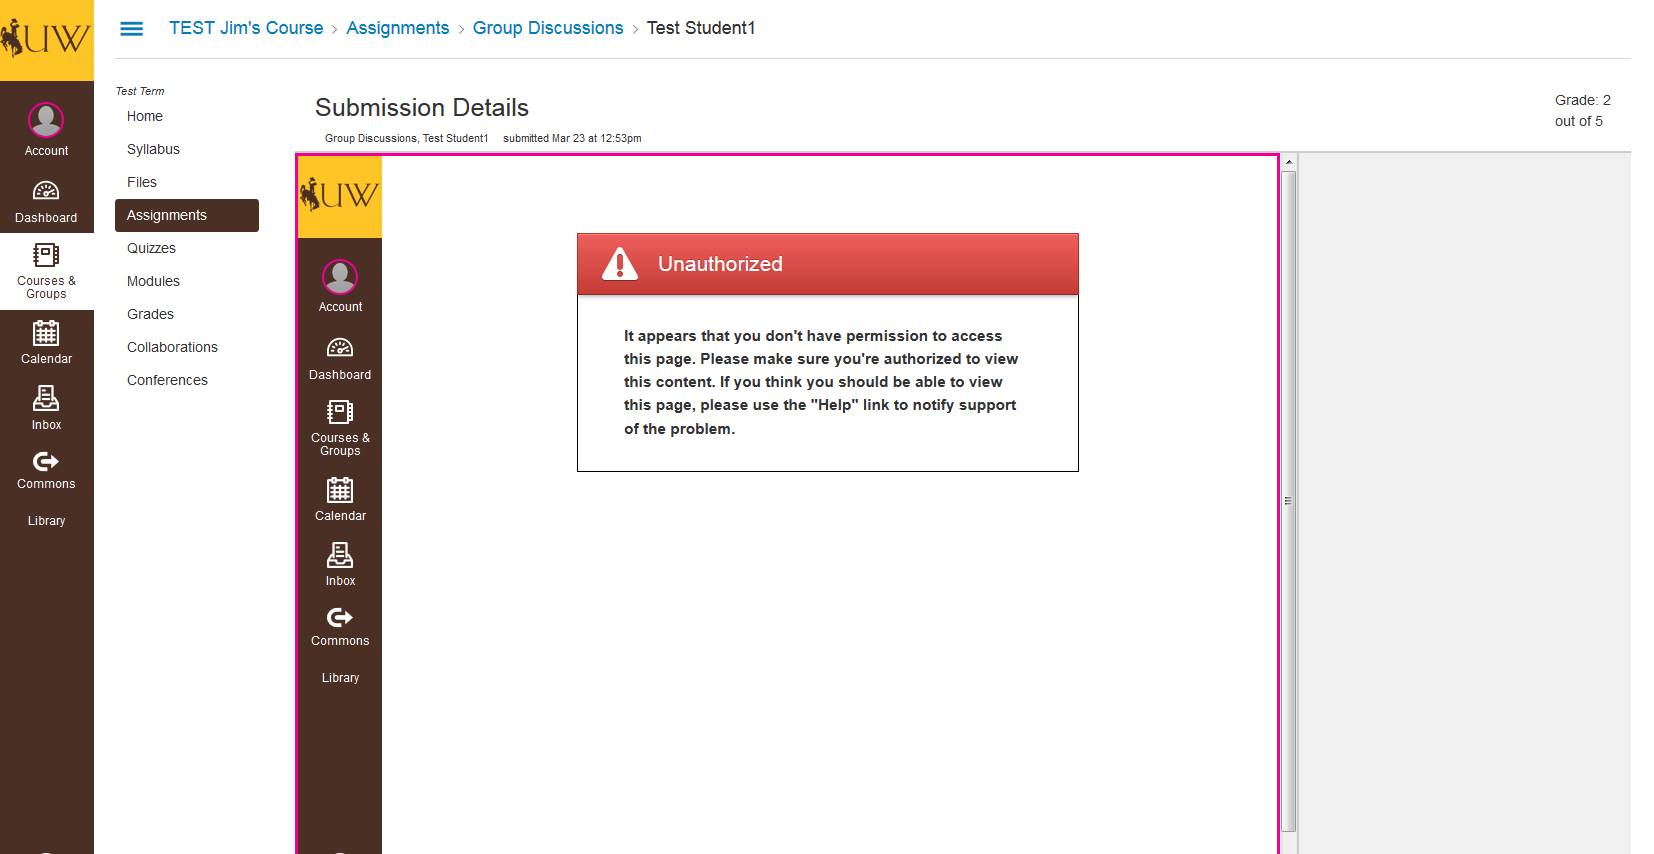 image showing advisor is not authorized to view discussion contributions by other students